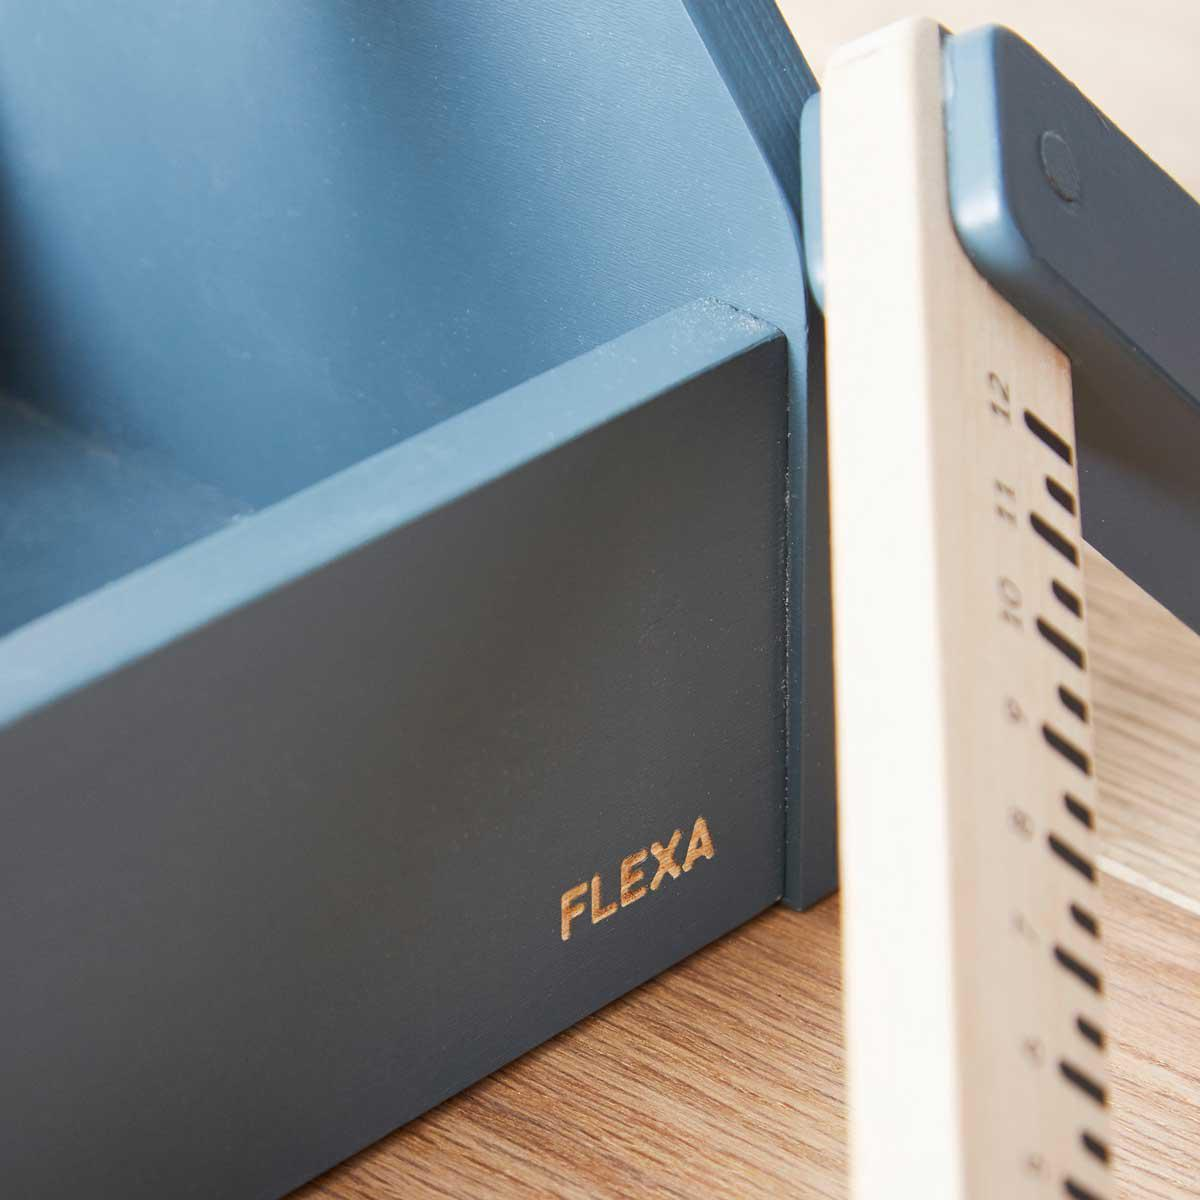 Caja de herramientas PLAY Flexa dark blue-natural wood